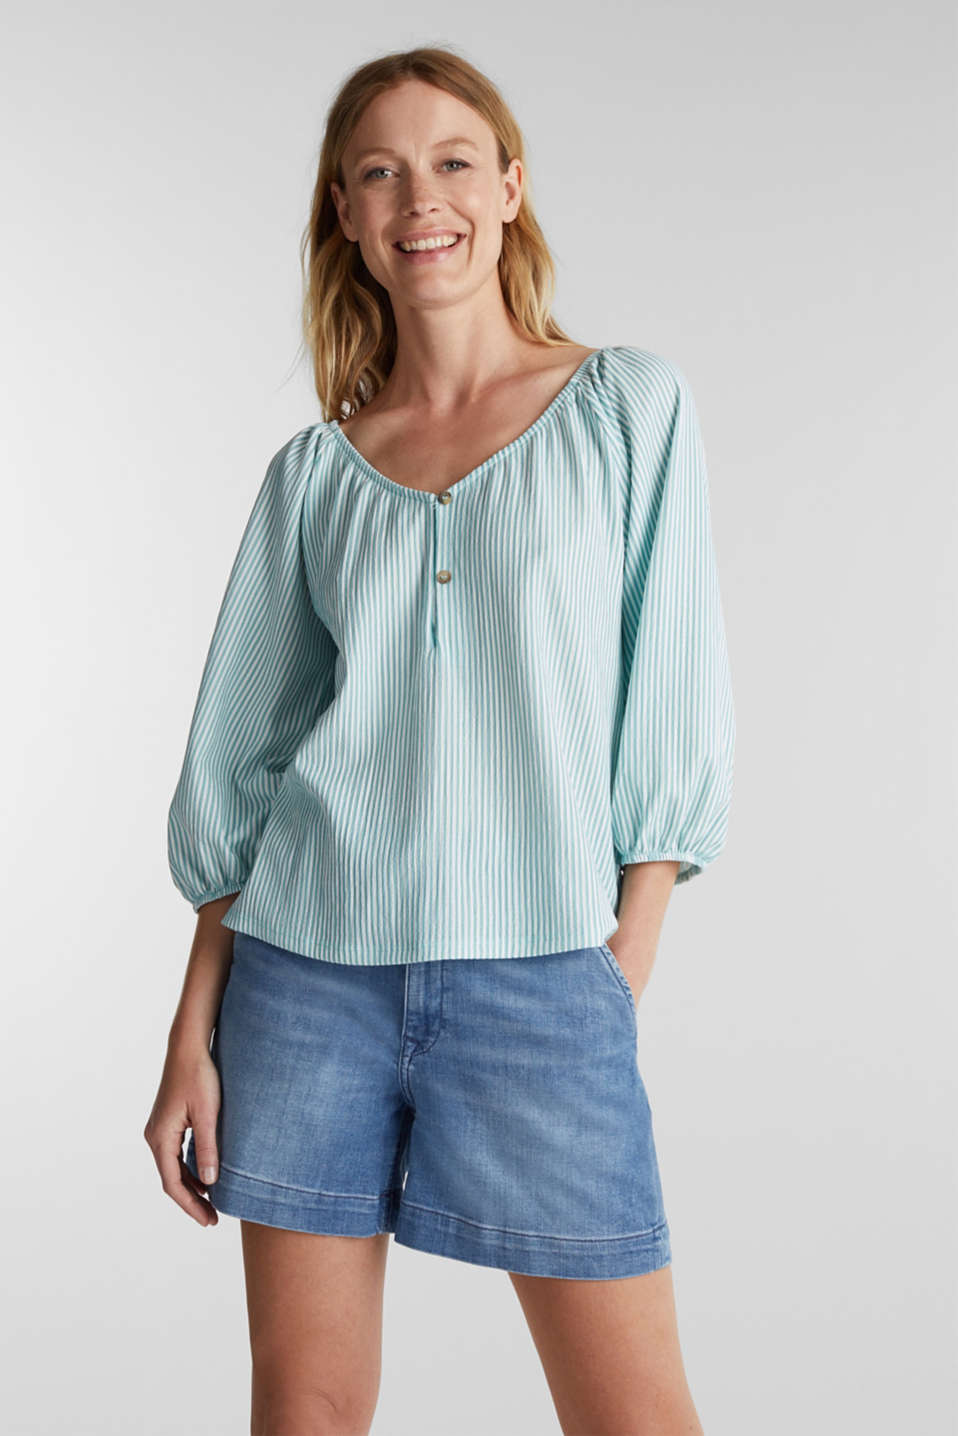 Esprit - Striped blouse top, recycled